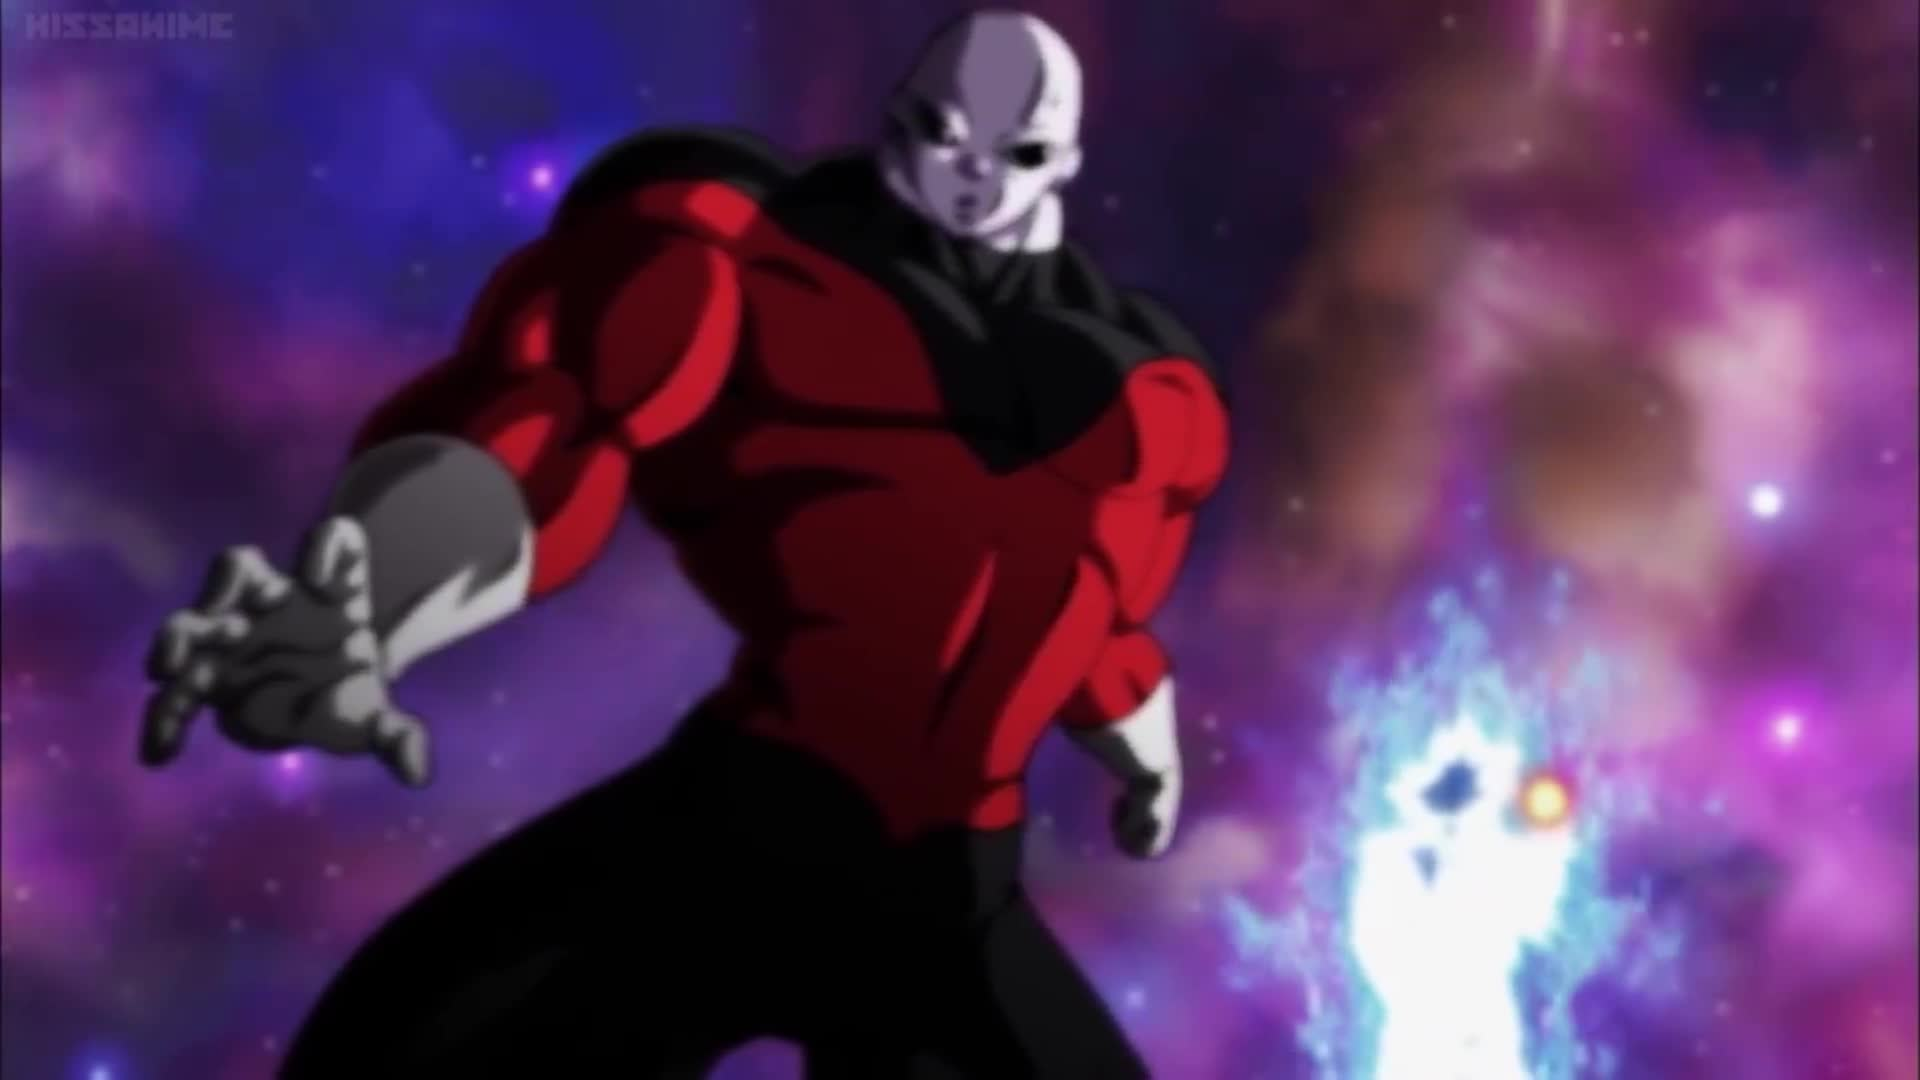 Goku Vs Jiren Mastered Ultra Instinct Gif By Quadcore Gfycat